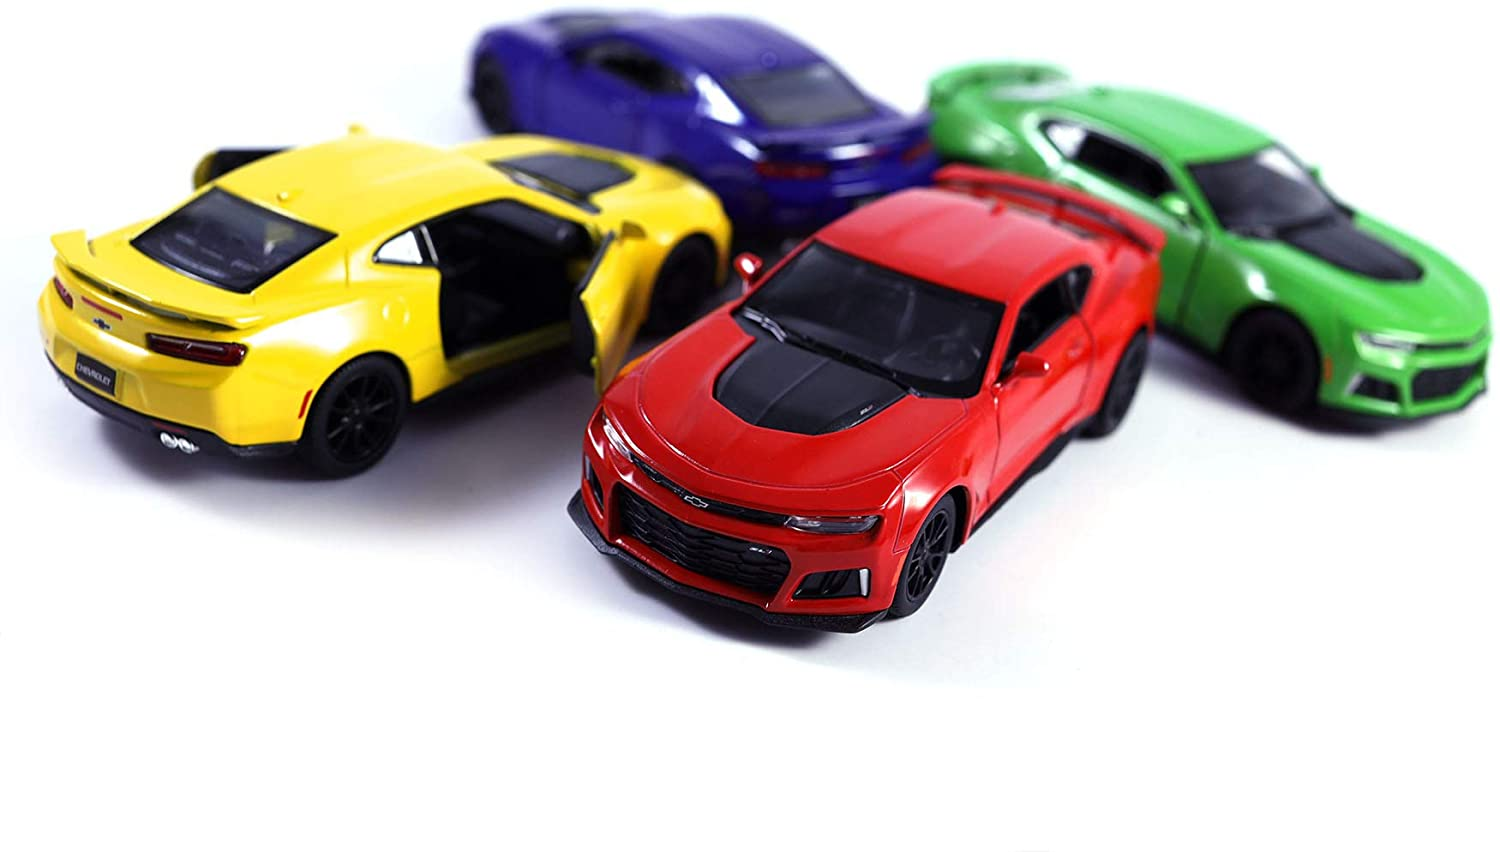 HCK Set of 4 2017 Chevy Camaro - Pull Back Toy Cars 1:38 Scale (Yellow/Red/Blue/Green)